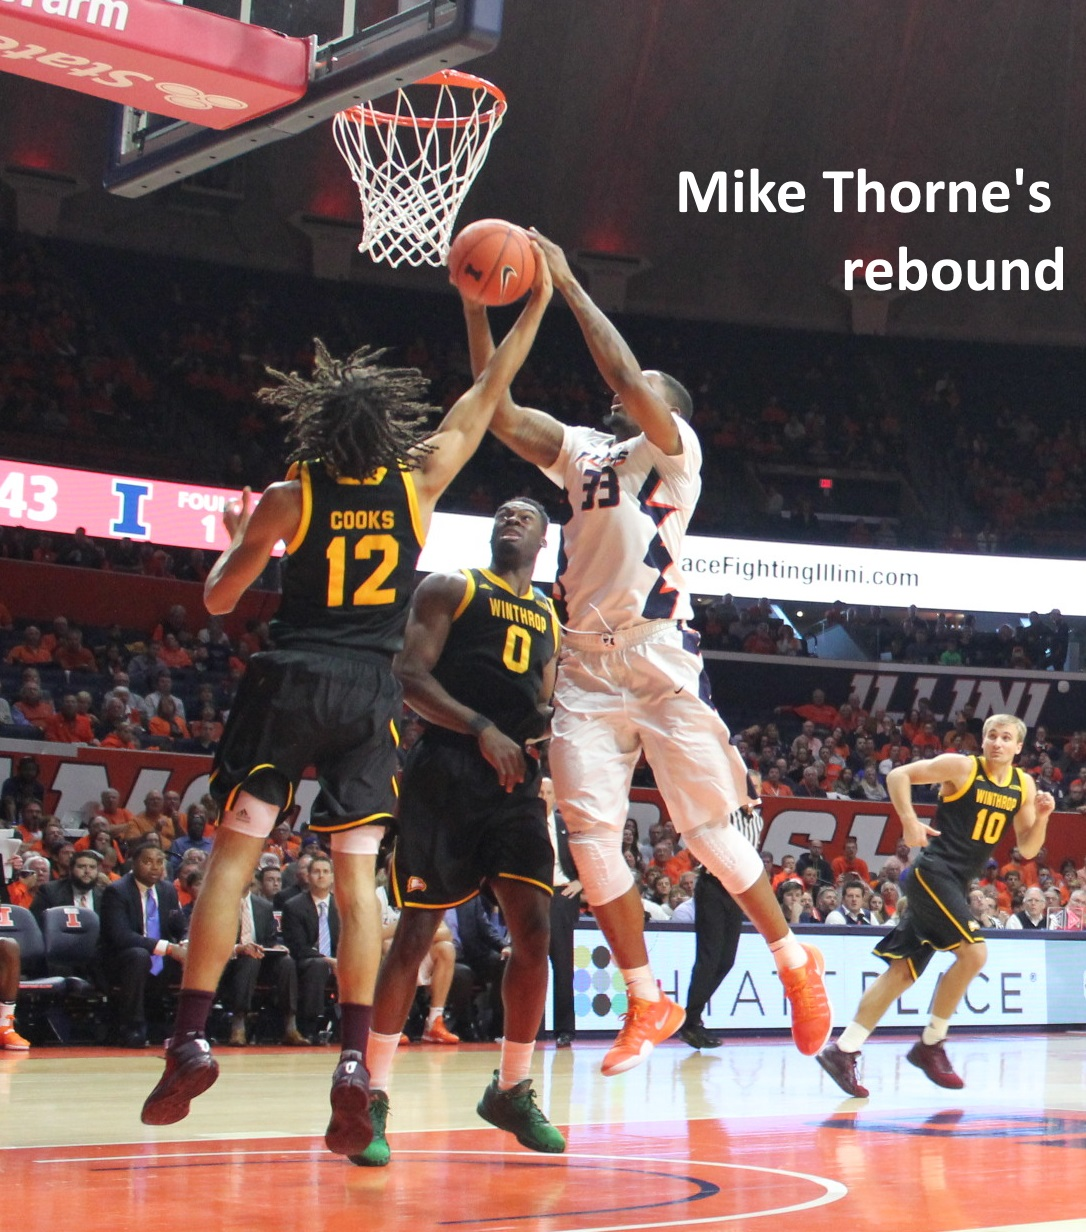 mike-thornes-rebound